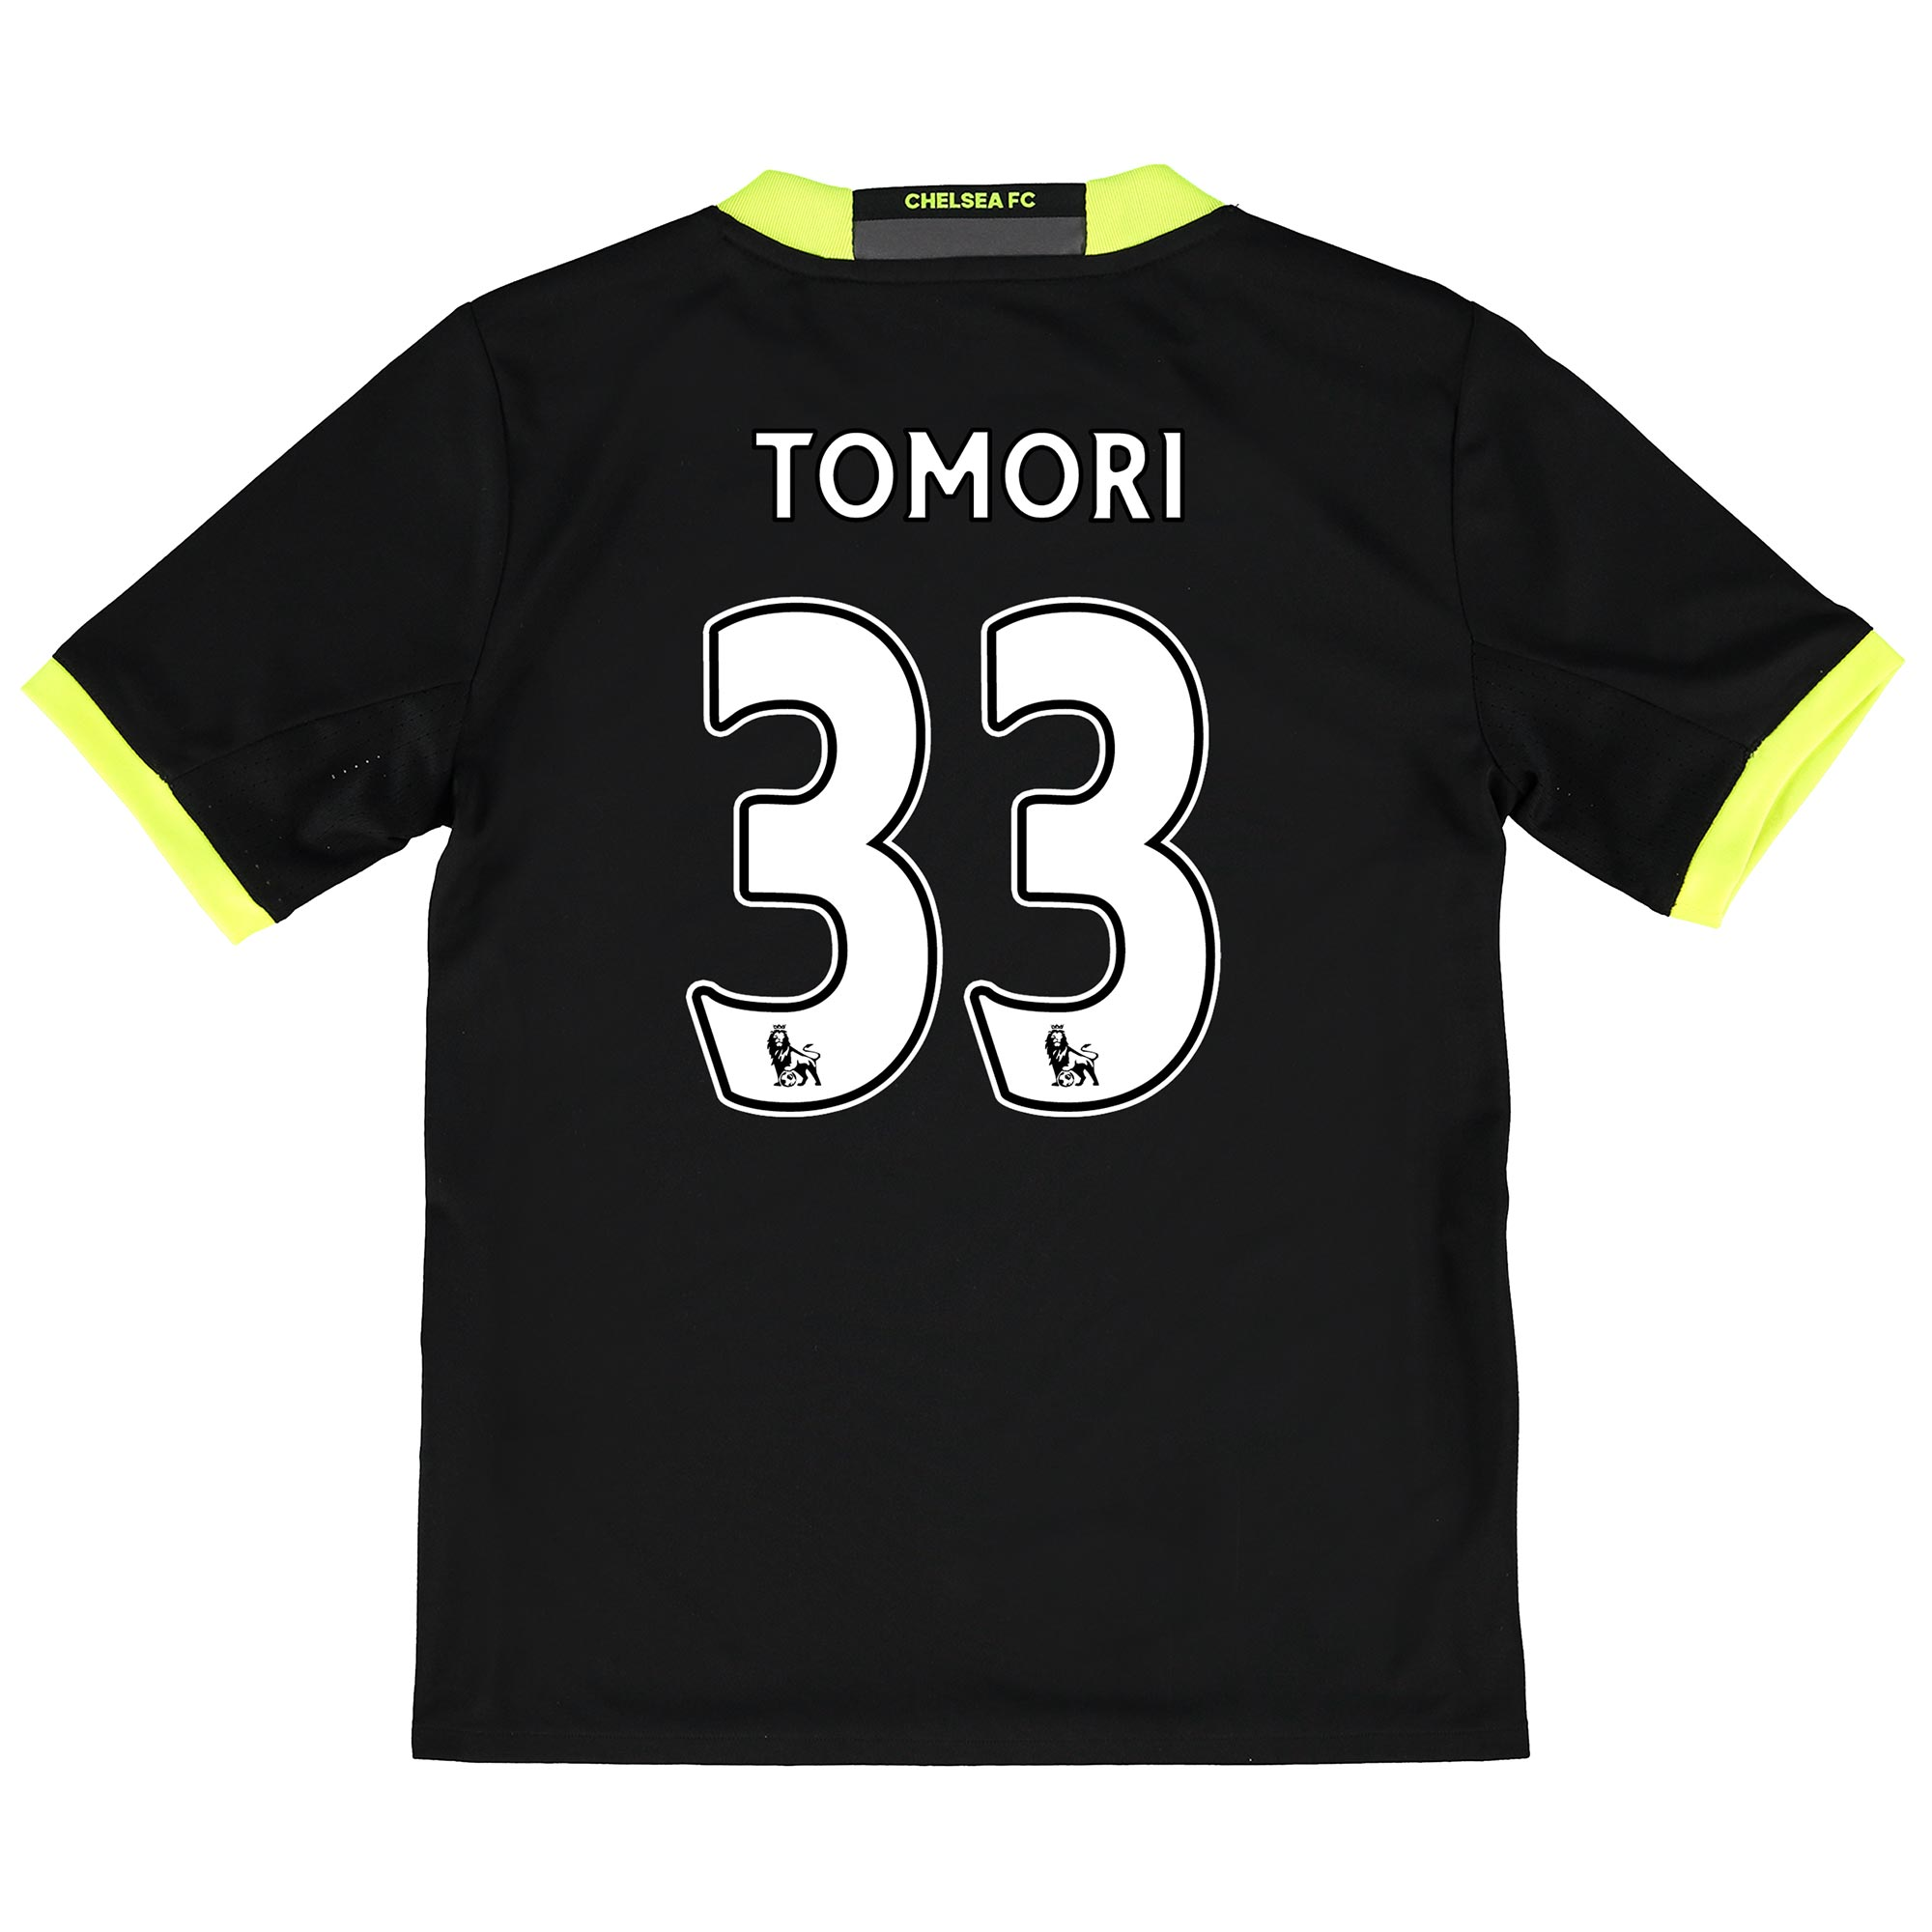 Chelsea Away Shirt 16-17 - Kids with Tomori 33 printing